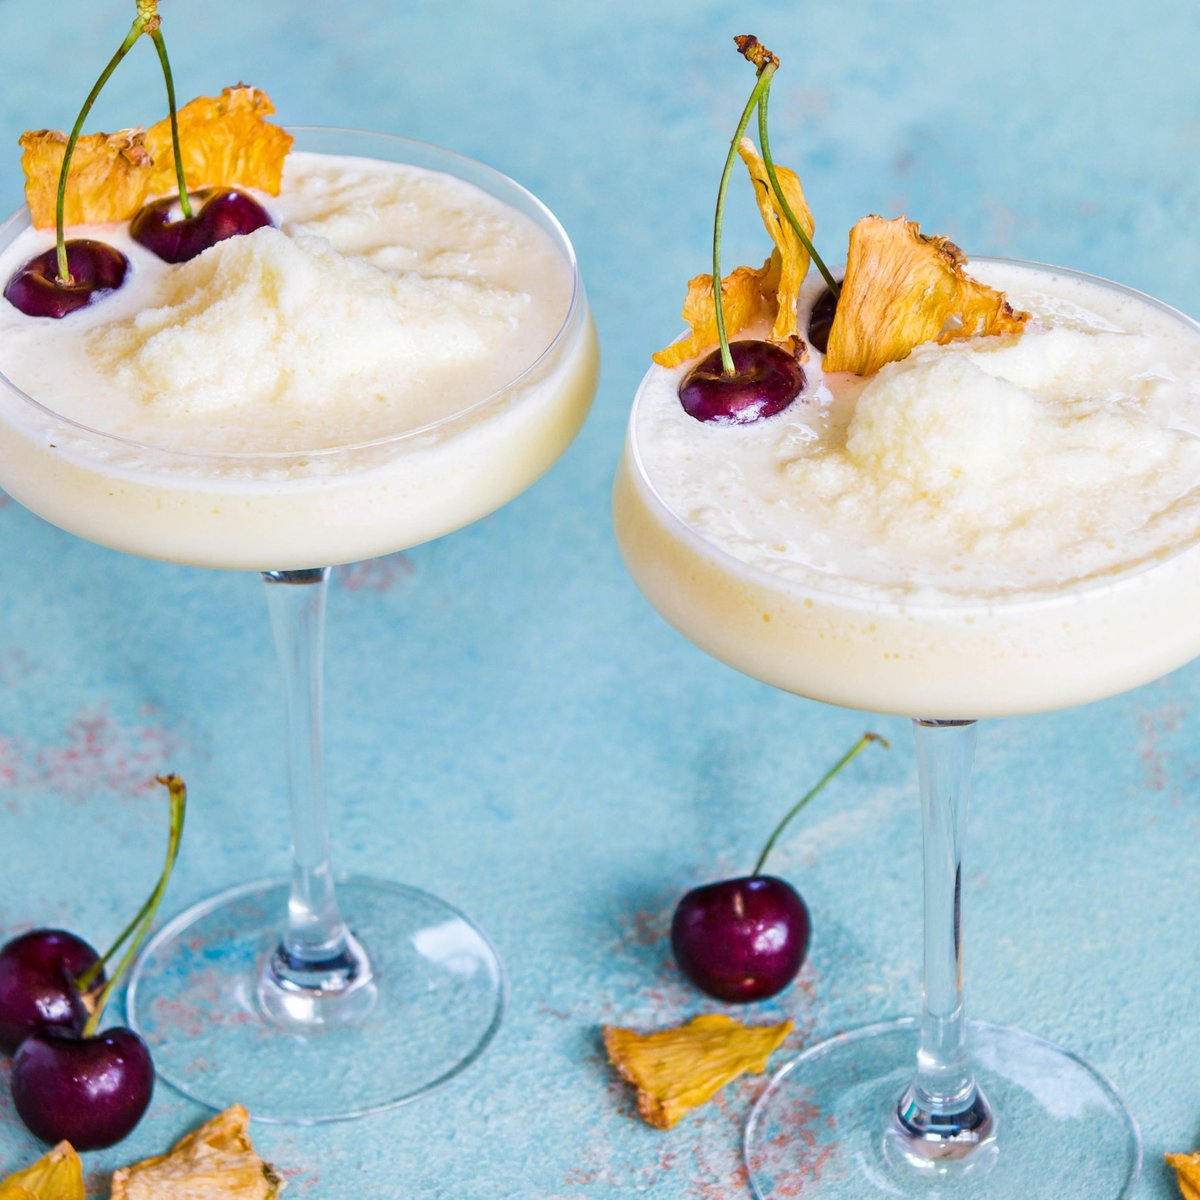 The Groovy Food Co On Twitter Celebrate The Bankholiday With A Refreshing Well Earned Pina Colada This Recipe Uses Our Organic Creamed Coconut Available In Tesco Morrisons For A